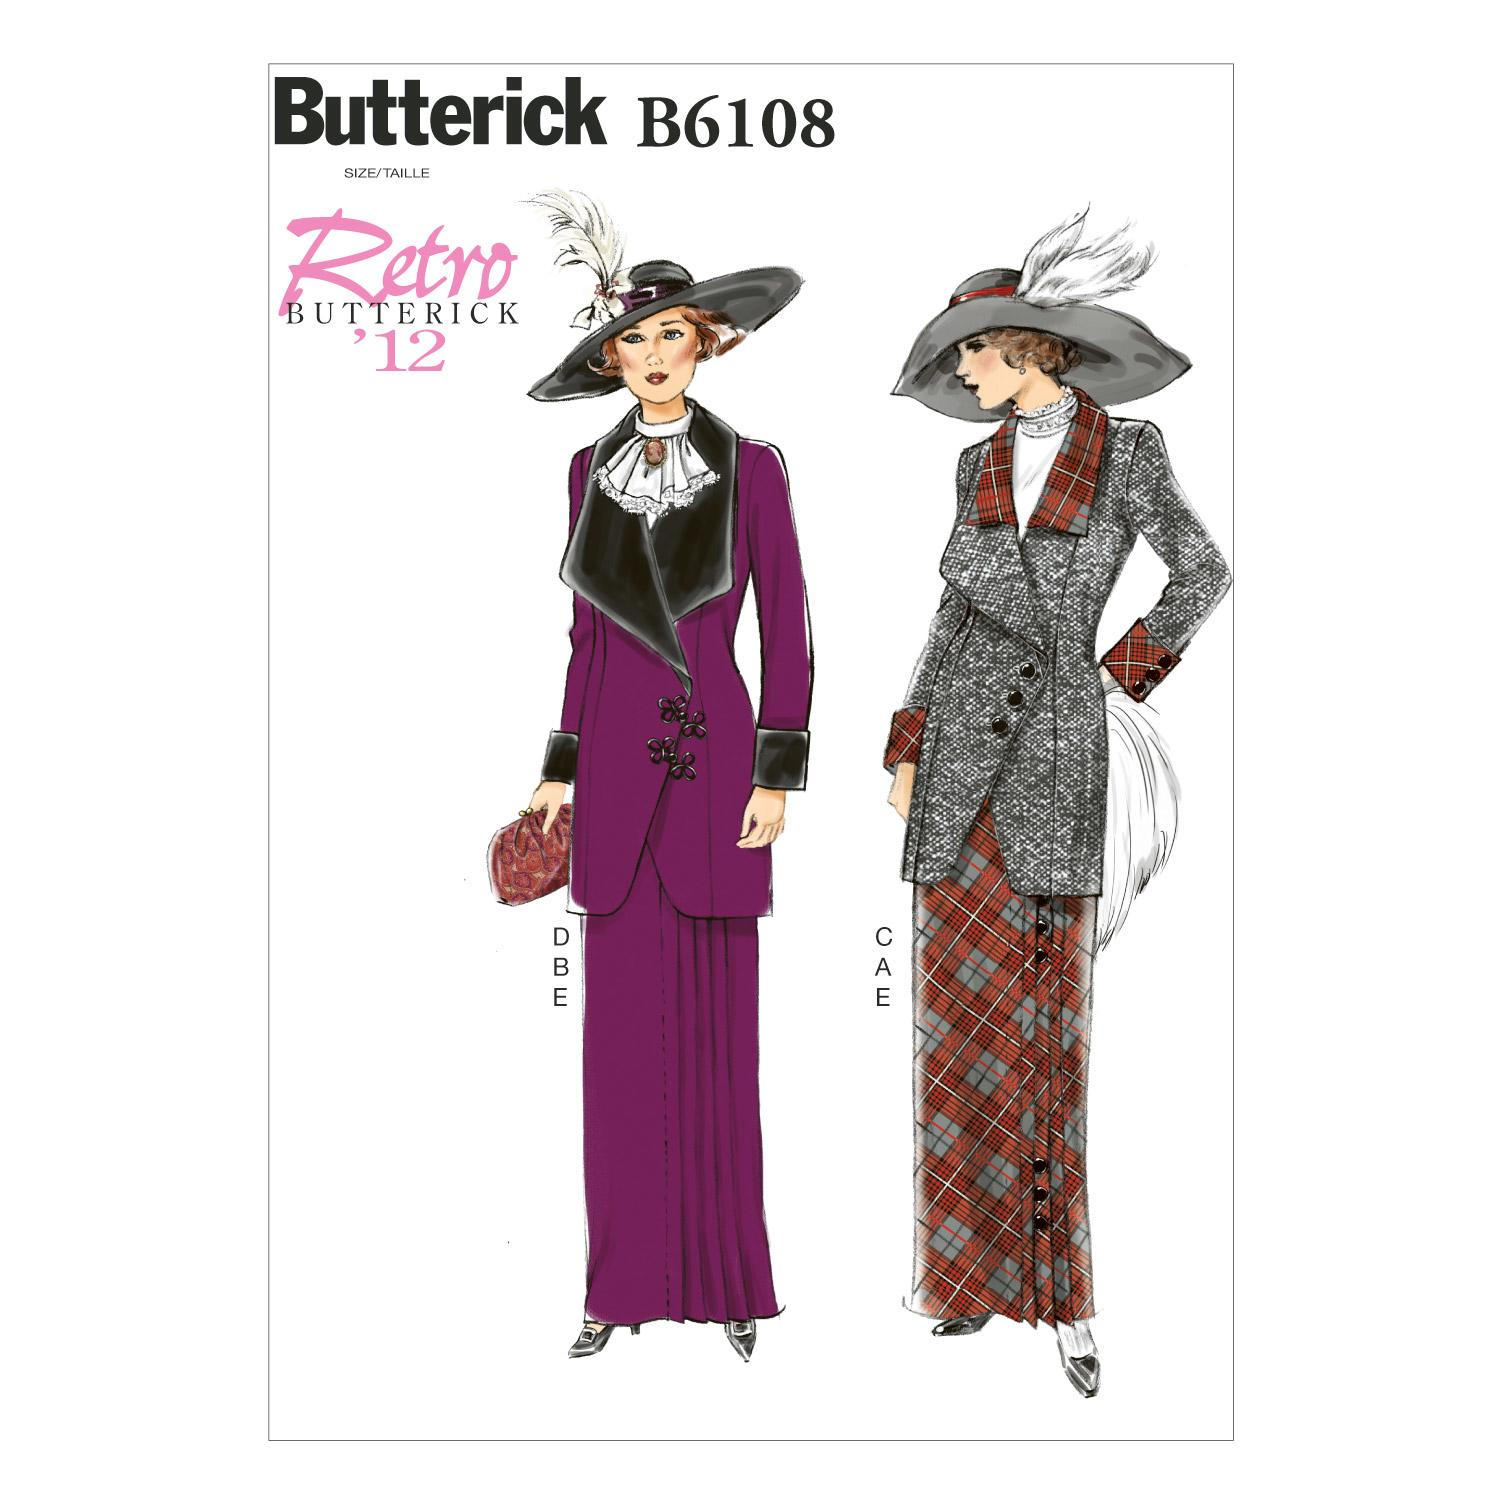 Butterick B6108 Misses' Jacket, Bib and Skirt